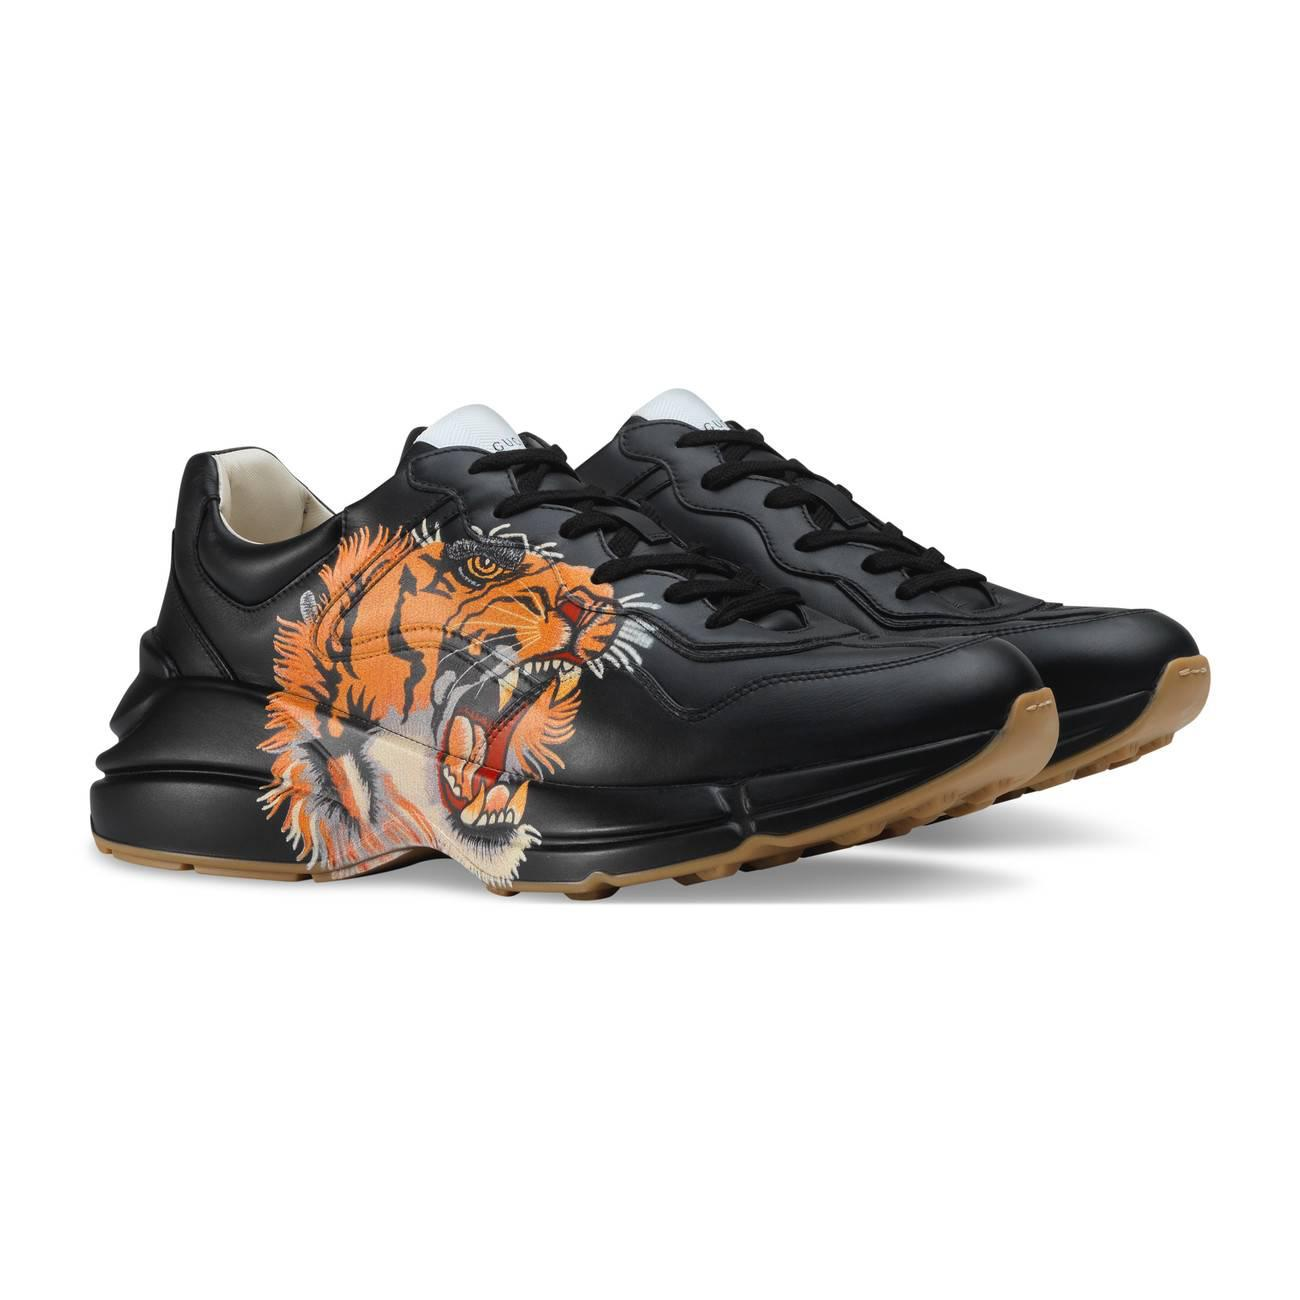 3af82c480 ... Rhyton Leather Sneakers for Men - Lyst. View fullscreen